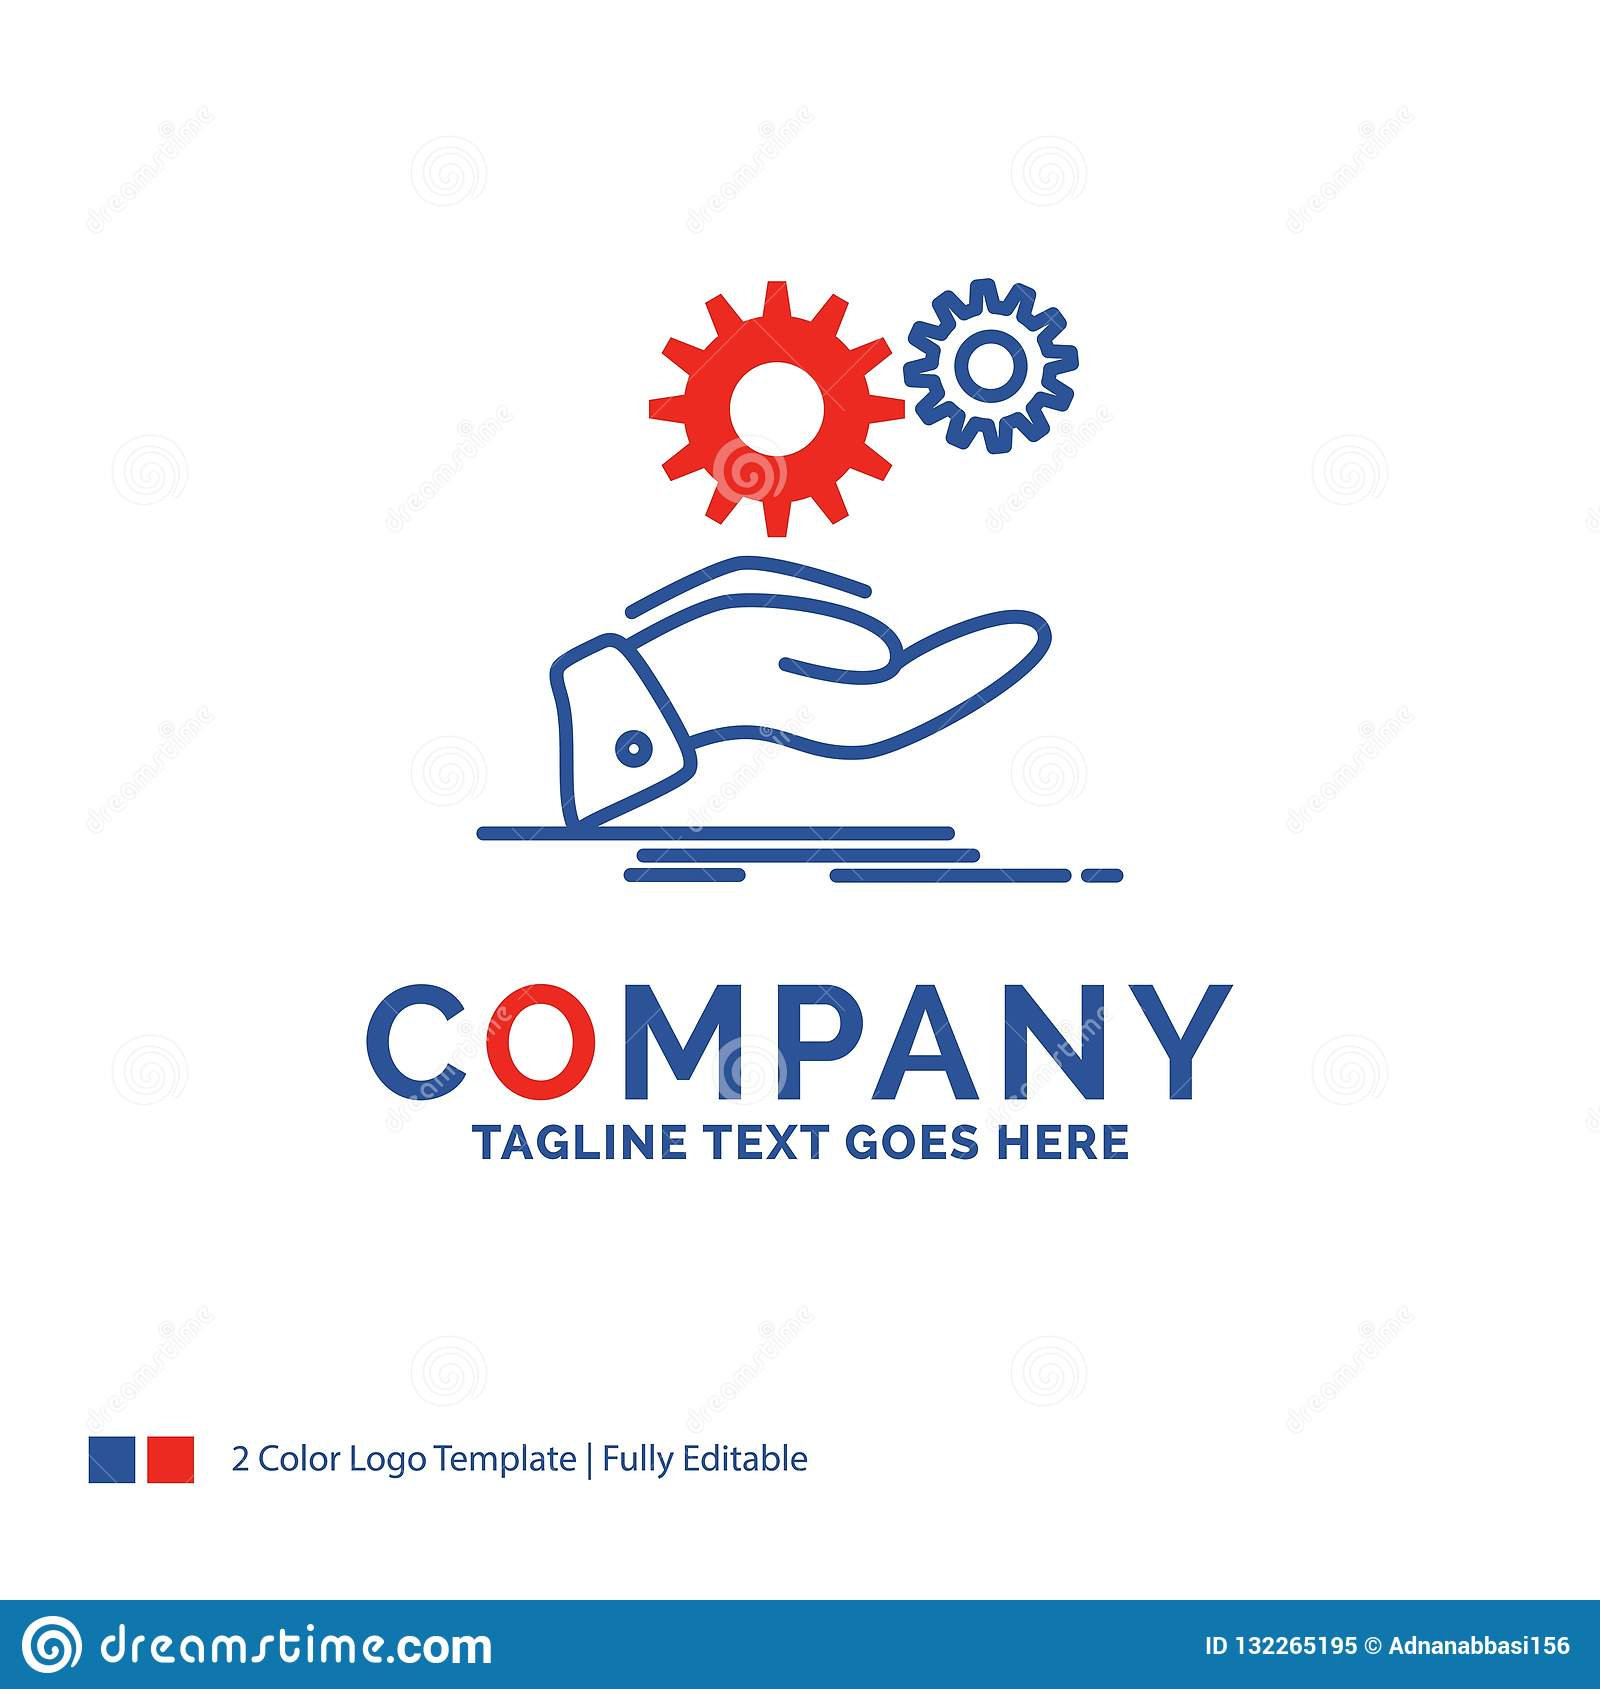 Company Name Logo Design For Solution, Hand, Idea, Gear ...